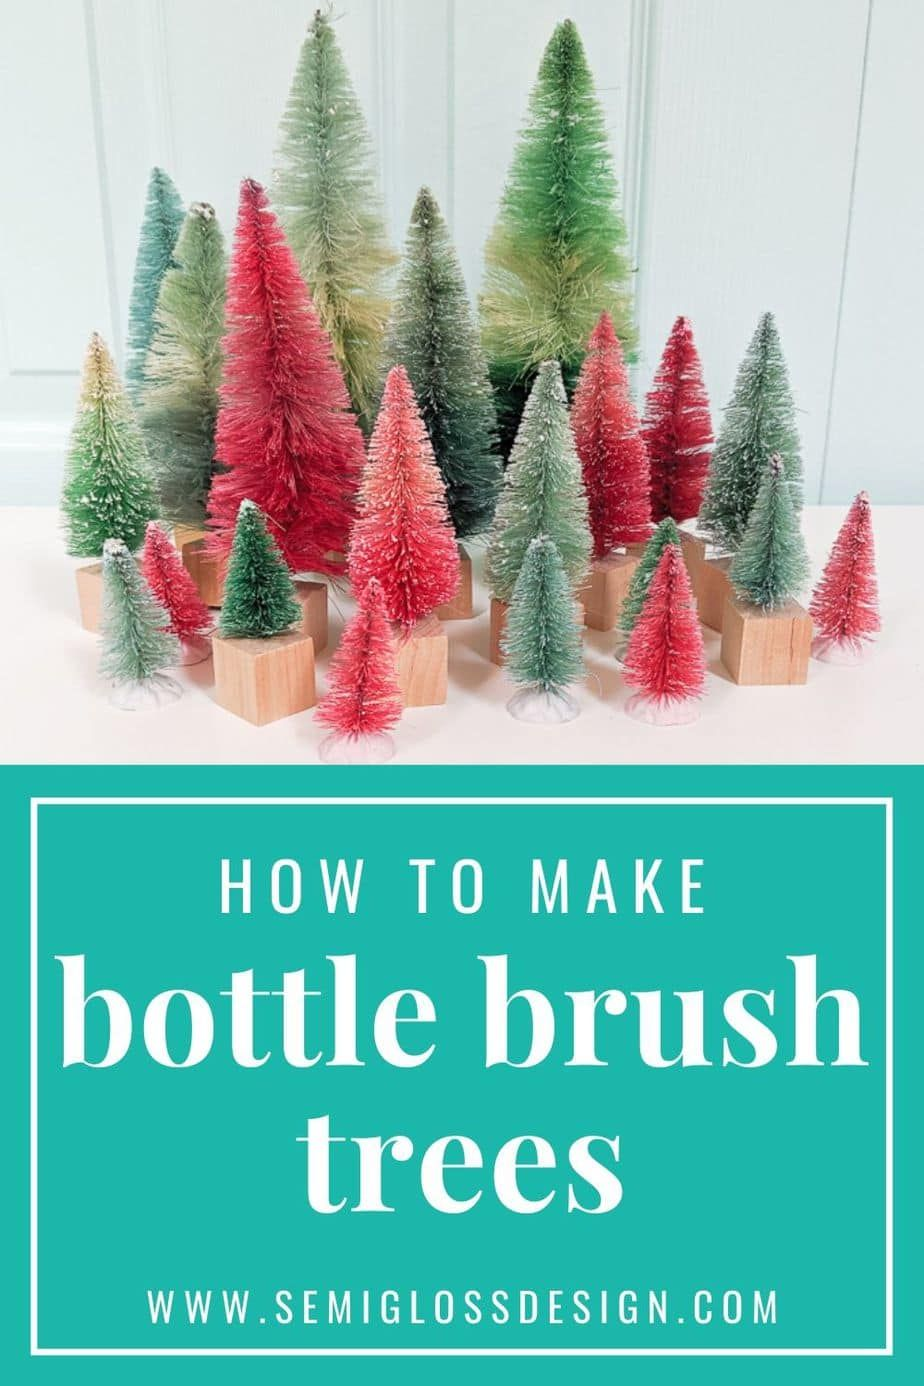 How To Make Diy Bottle Brush Trees Semigloss Design Bottle Brush Trees Bottle Brush Christmas Trees Diy Bottle